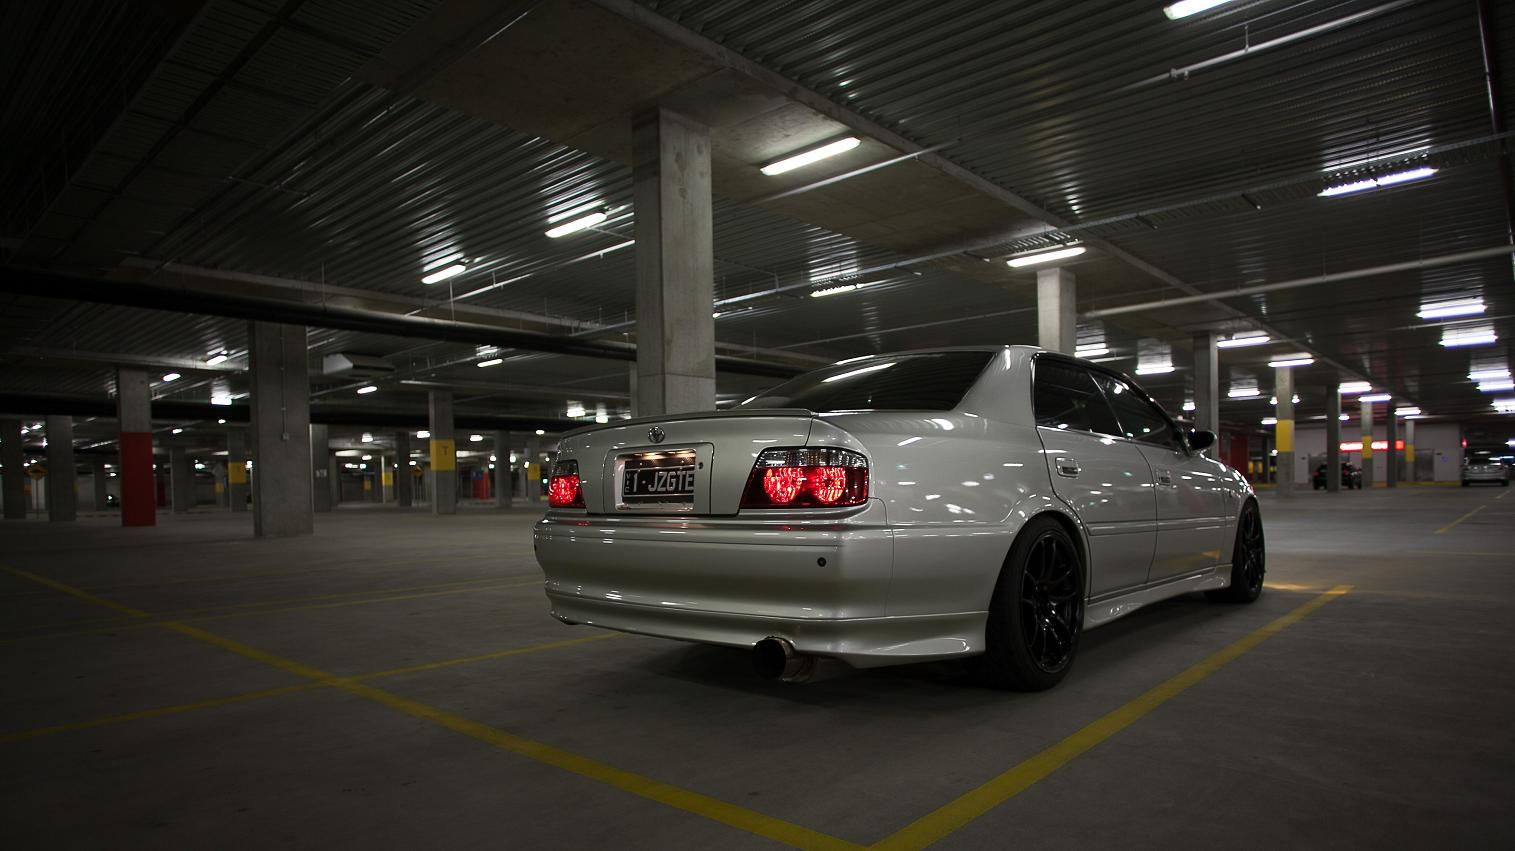 Toyota Chaser JZX100, so clean and much want!